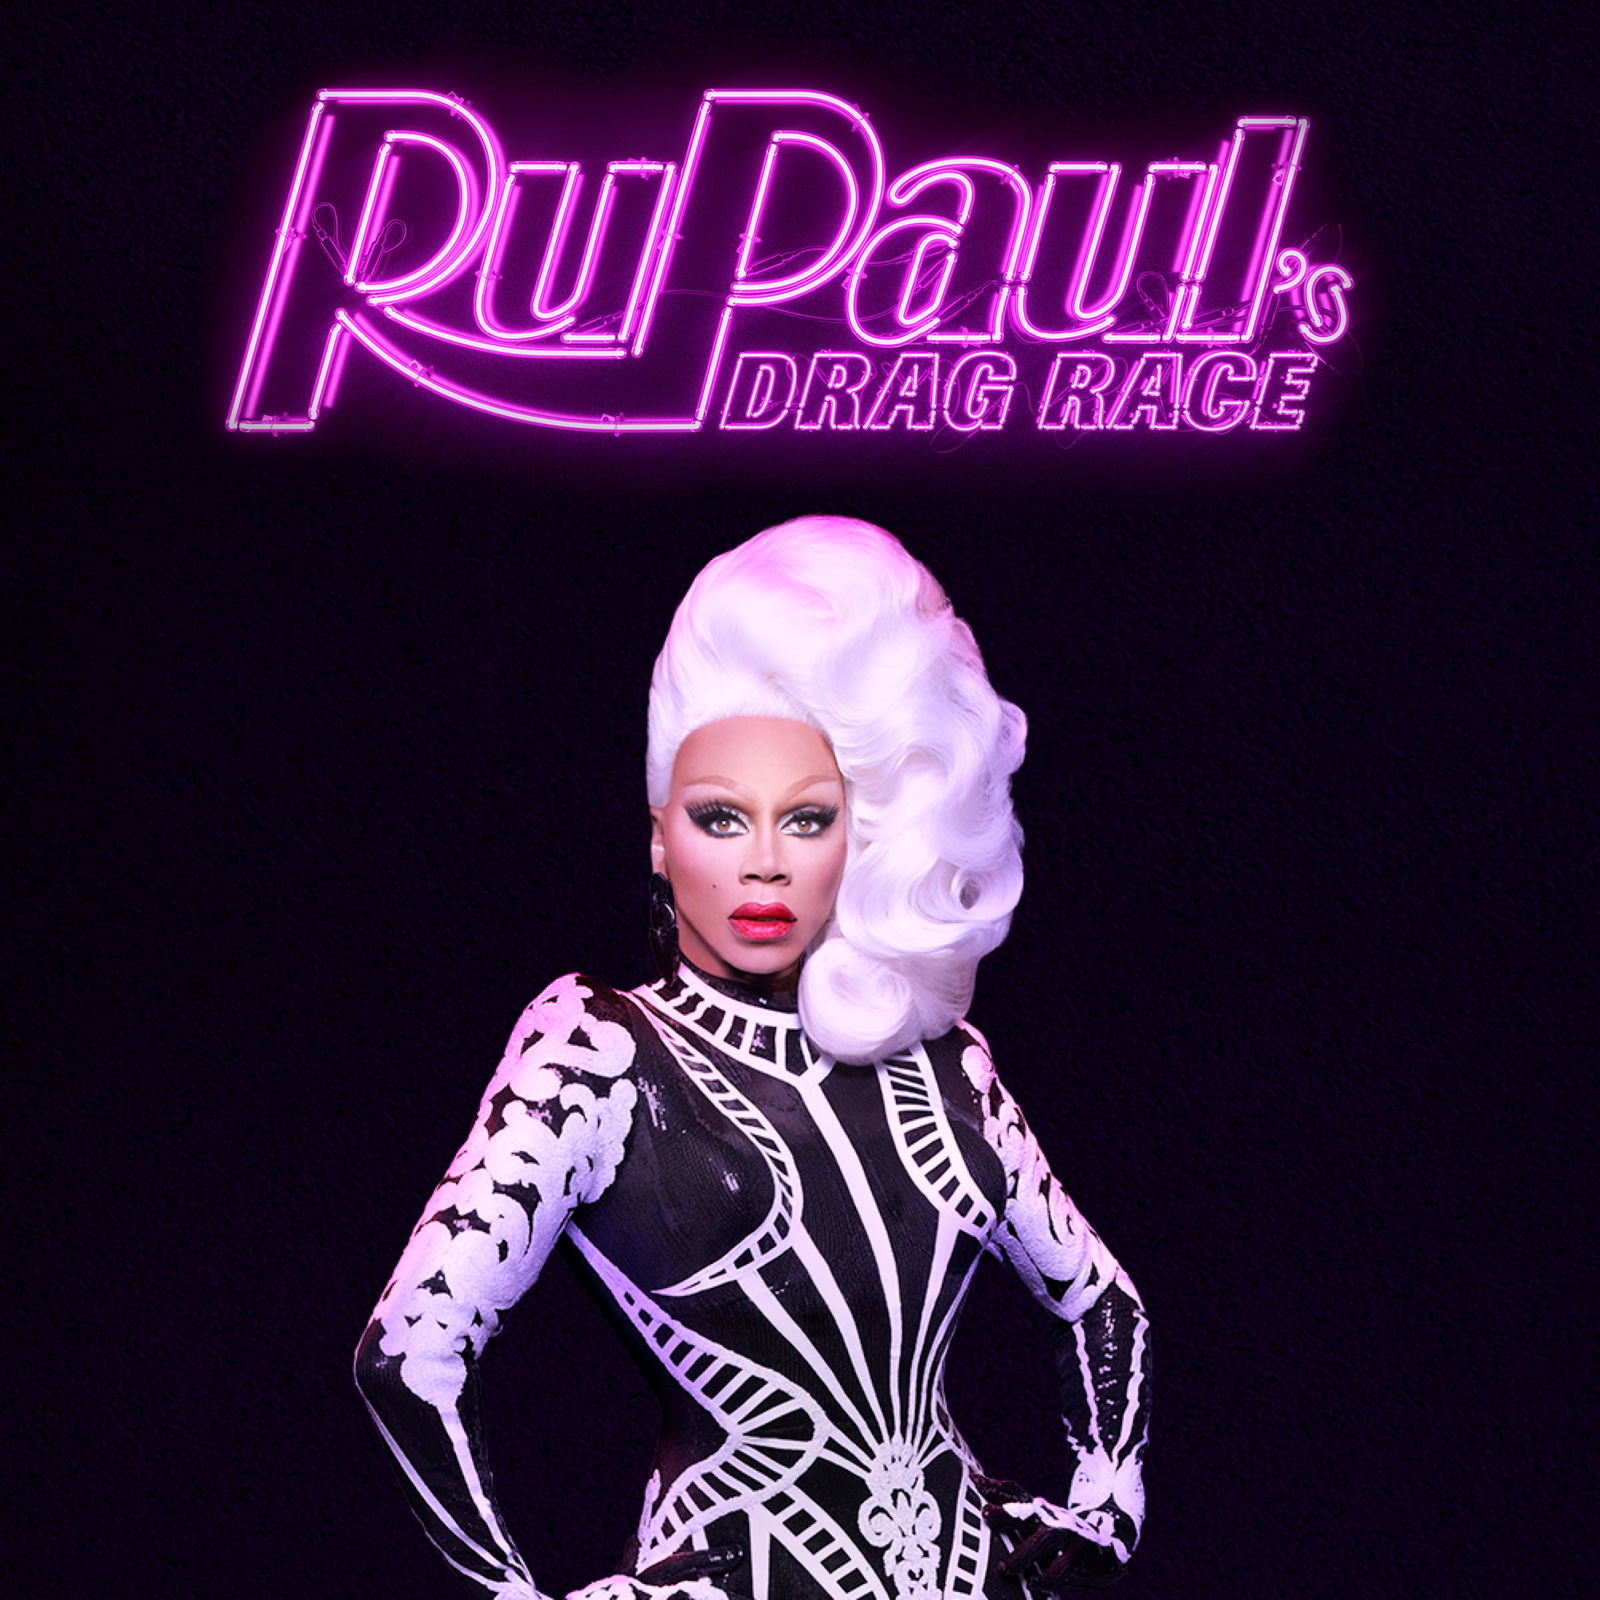 Download RuPauls Drag Race S10 Season 10 SX Season X 1080p Assistir Online Legenda Embutida Fuzzco News.jpg